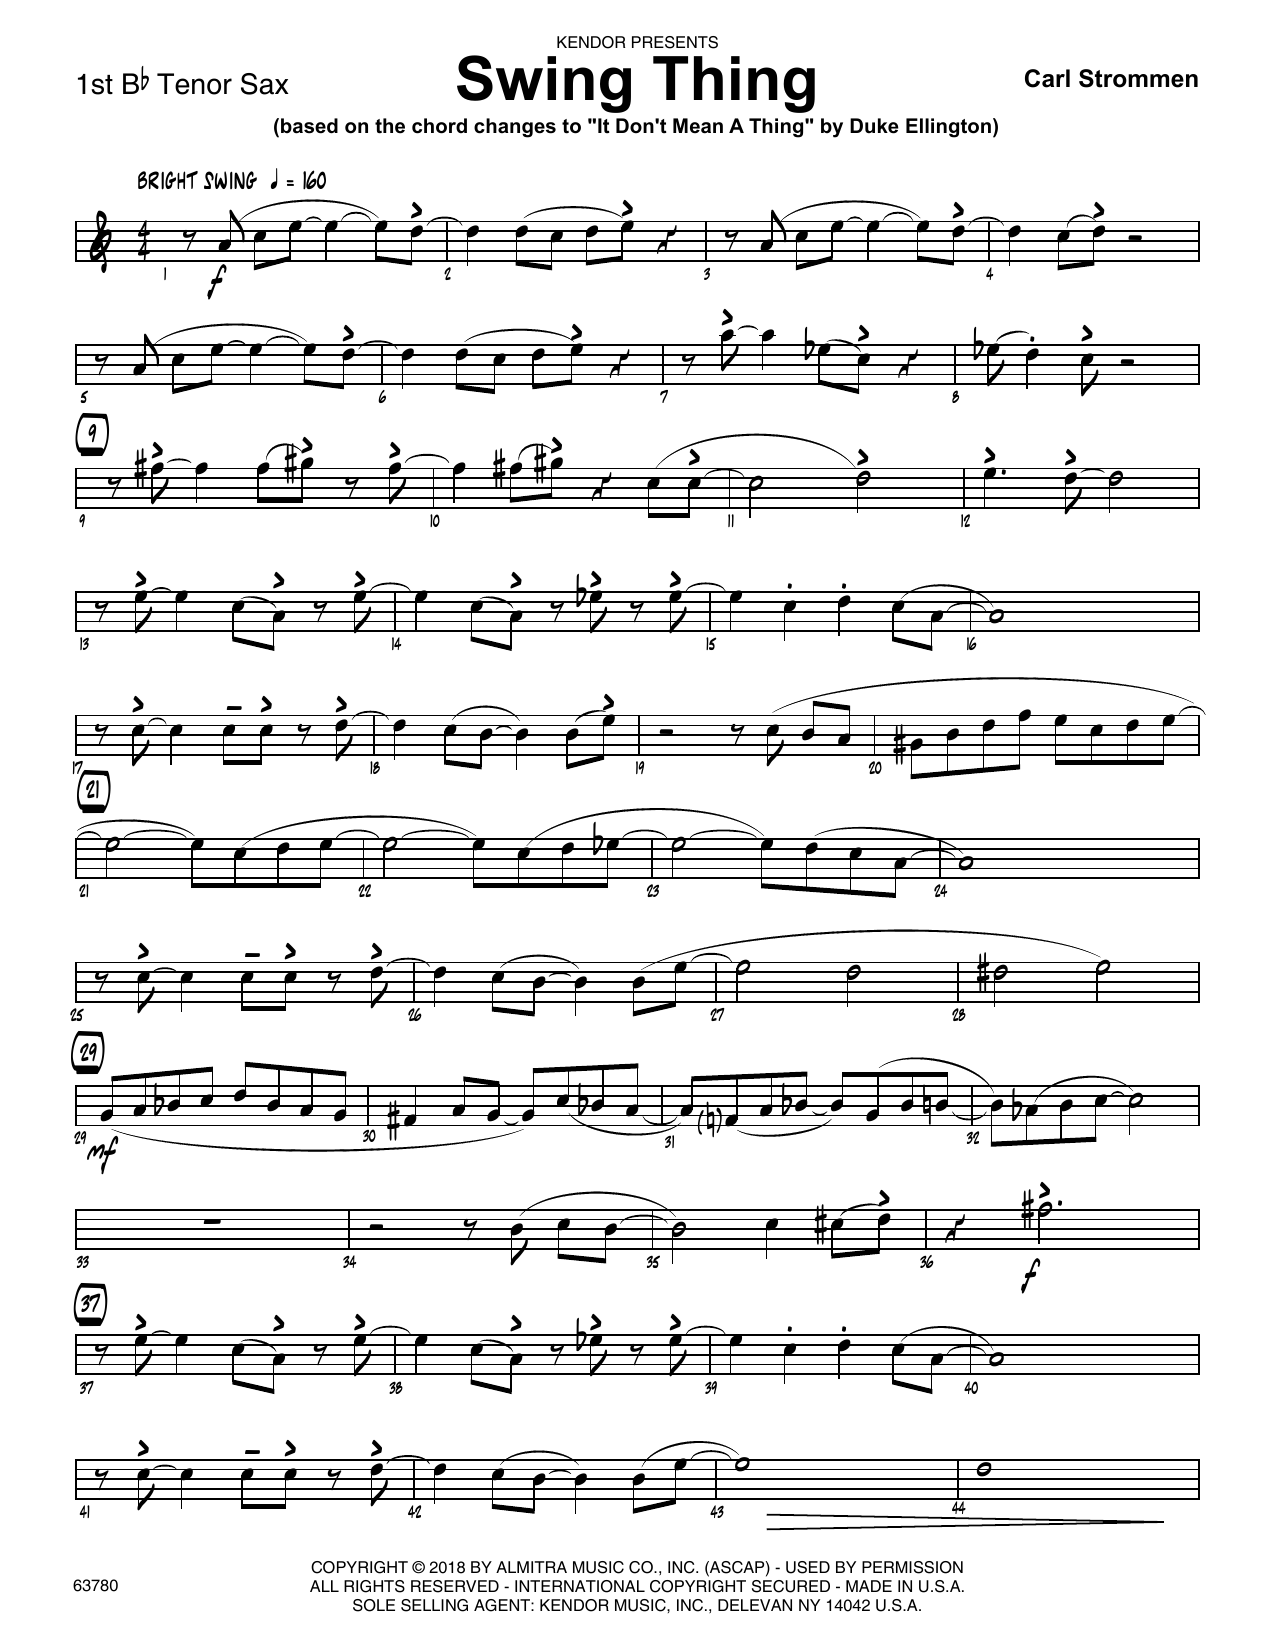 Carl Strommen Swing Thing - 1st Tenor Saxophone sheet music preview music notes and score for Jazz Ensemble including 2 page(s)